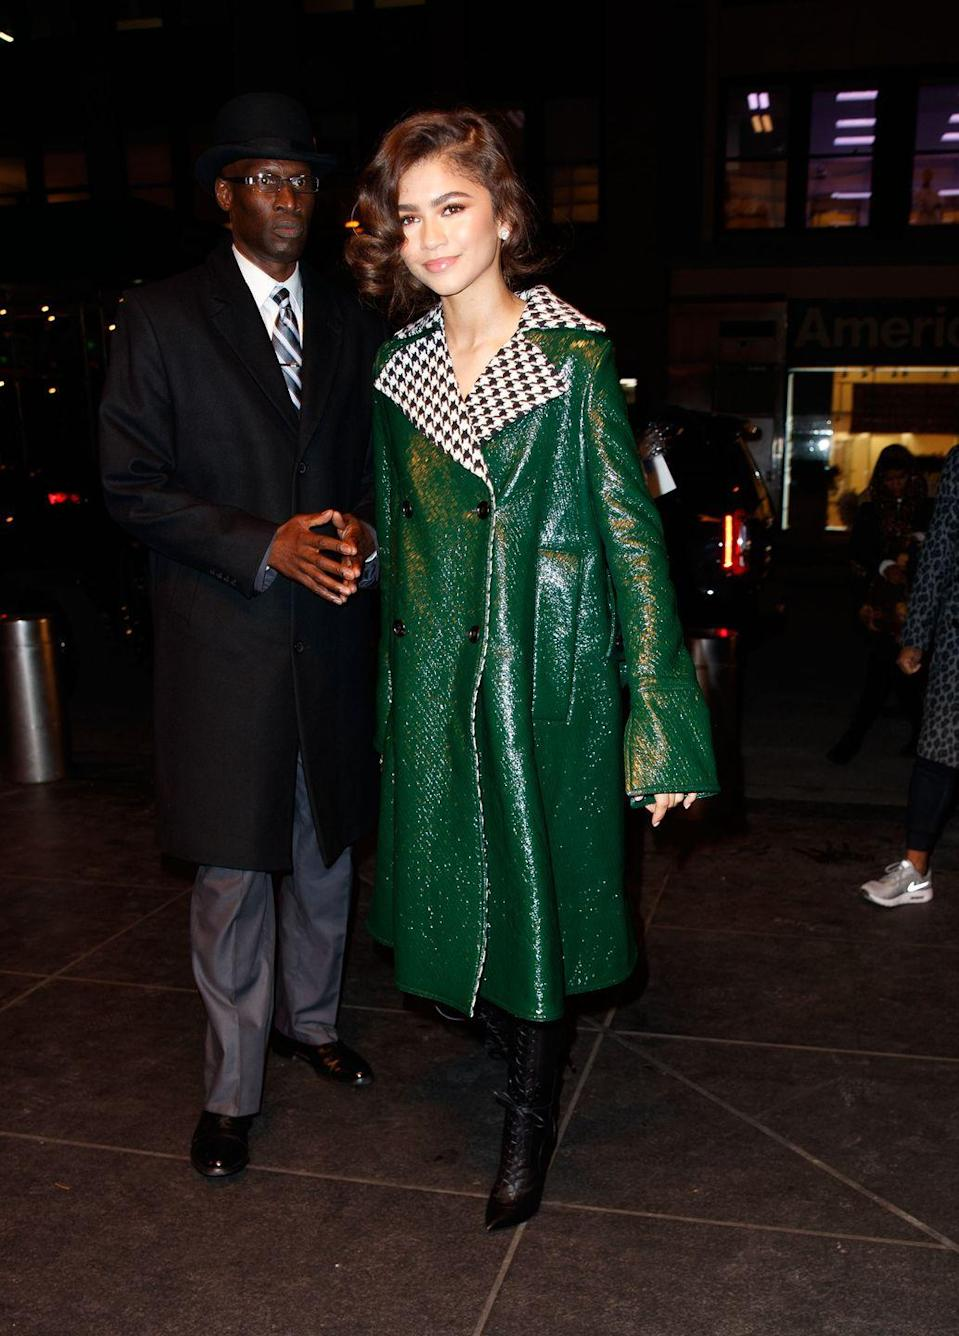 <p>Zendaya's coat is already a statement due to the gorgeous emerald hue but give it a decorative collar and you have a truly one-of-a-kind piece. Keep everything else super simple to really let the coat have its moment. </p>